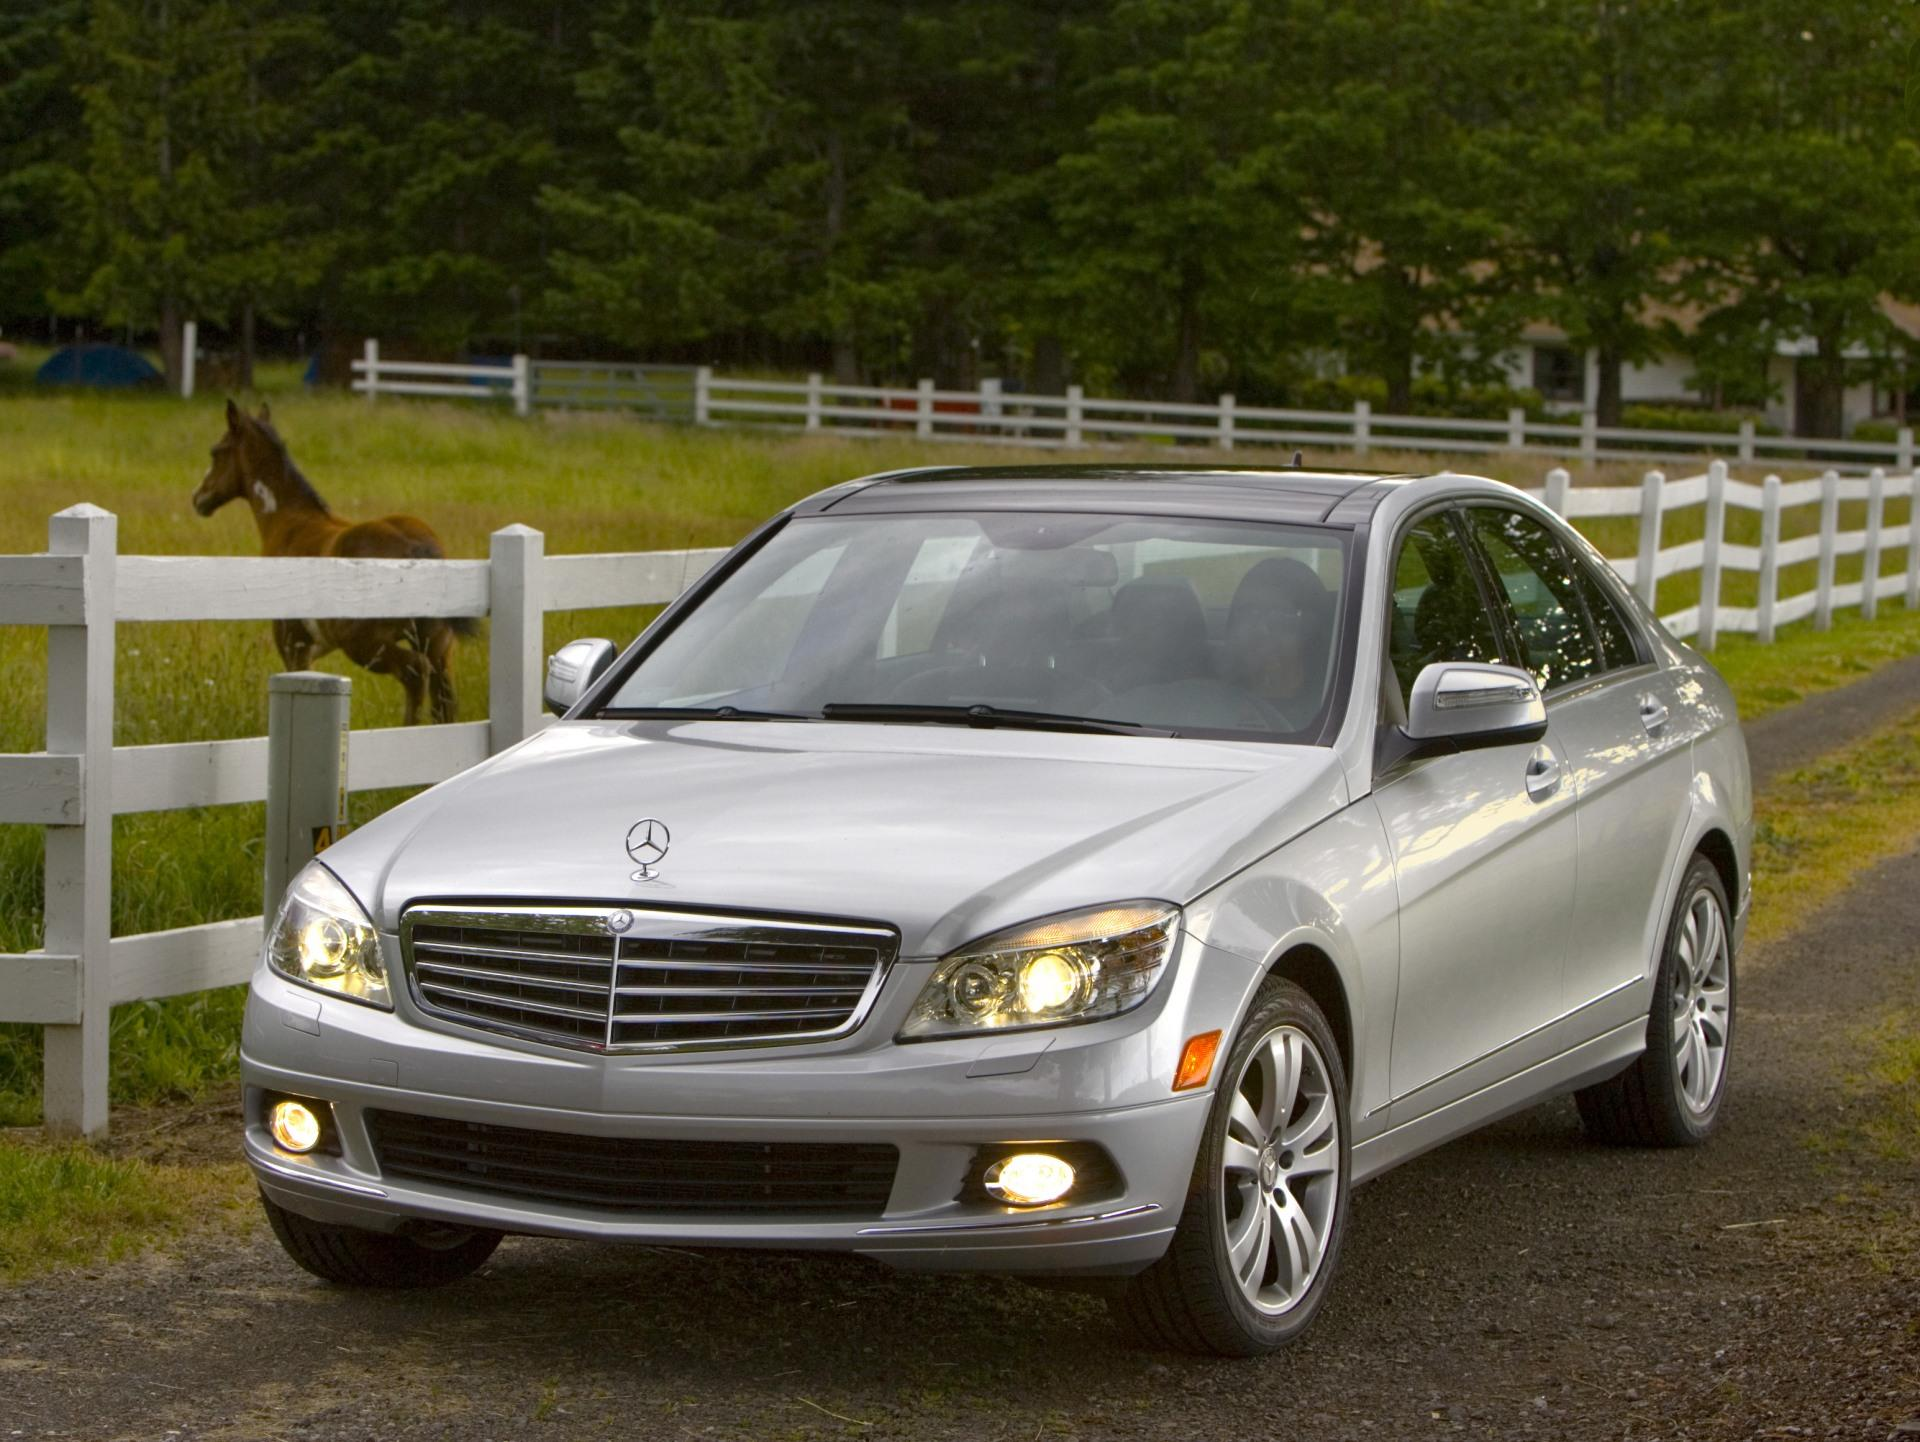 2009 mercedes benz c class news and information for Facts about mercedes benz